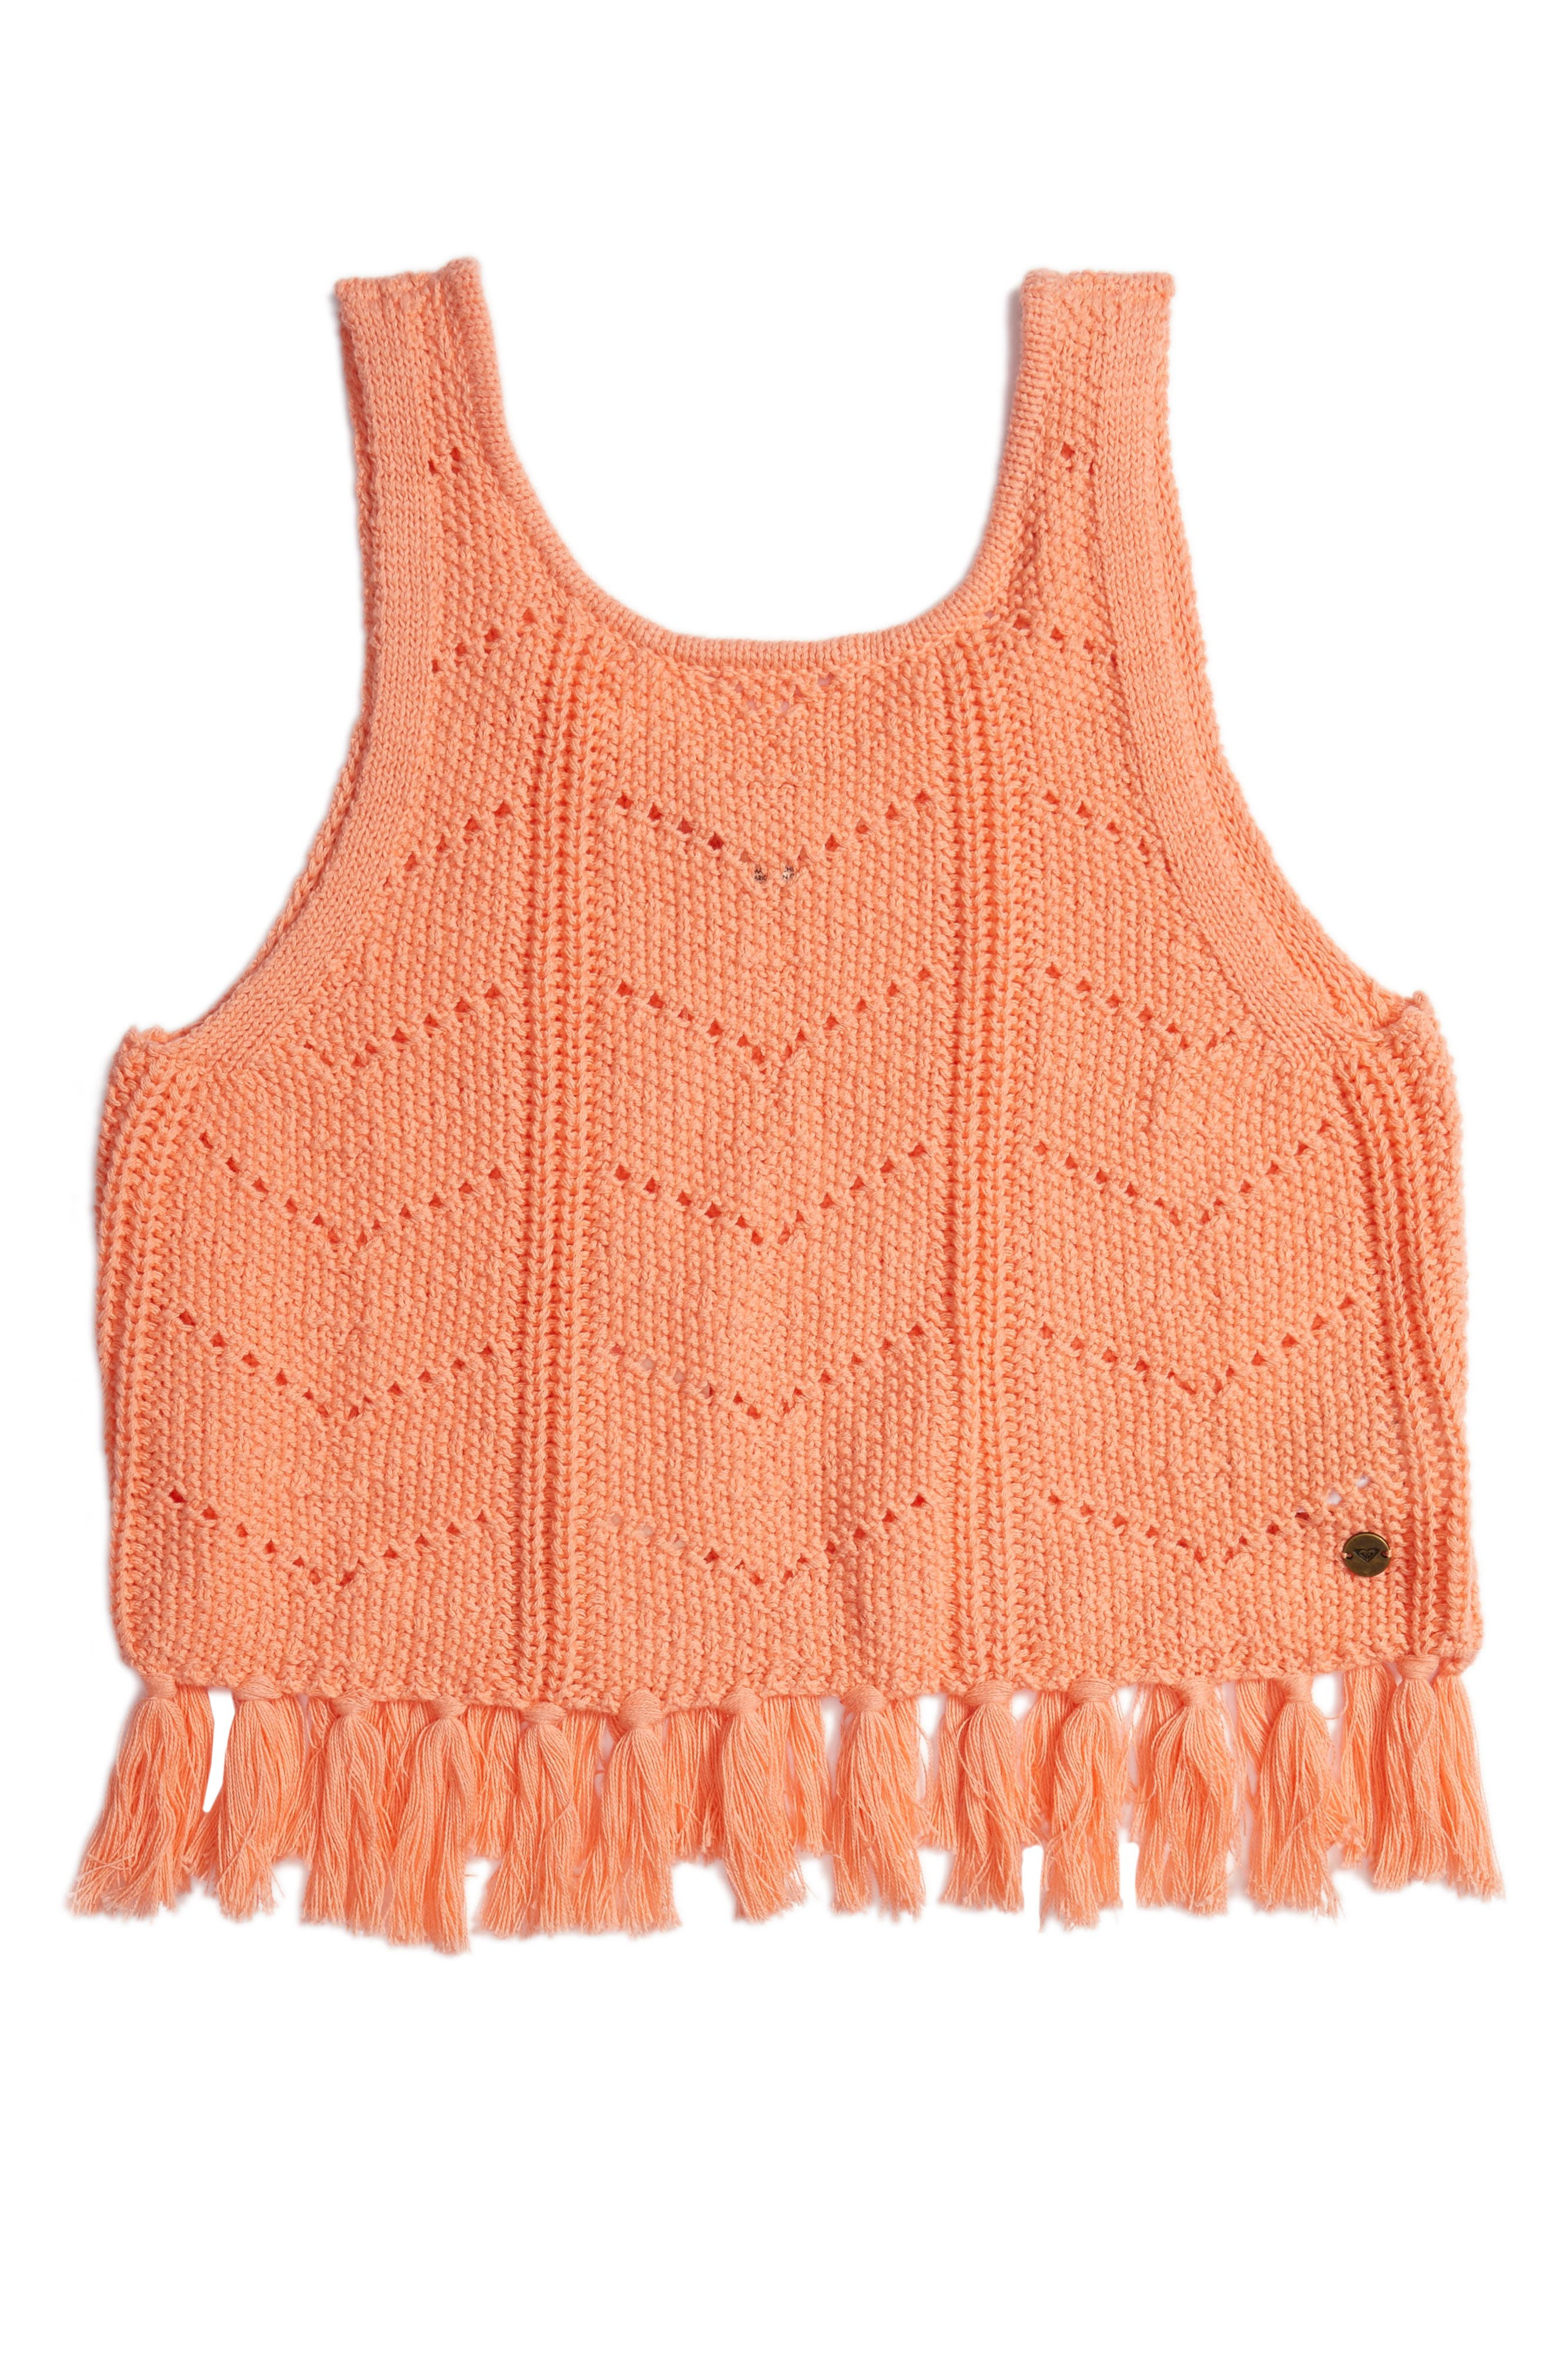 Roxy Set Them Free Knit Tassel Tank (Big Girls)